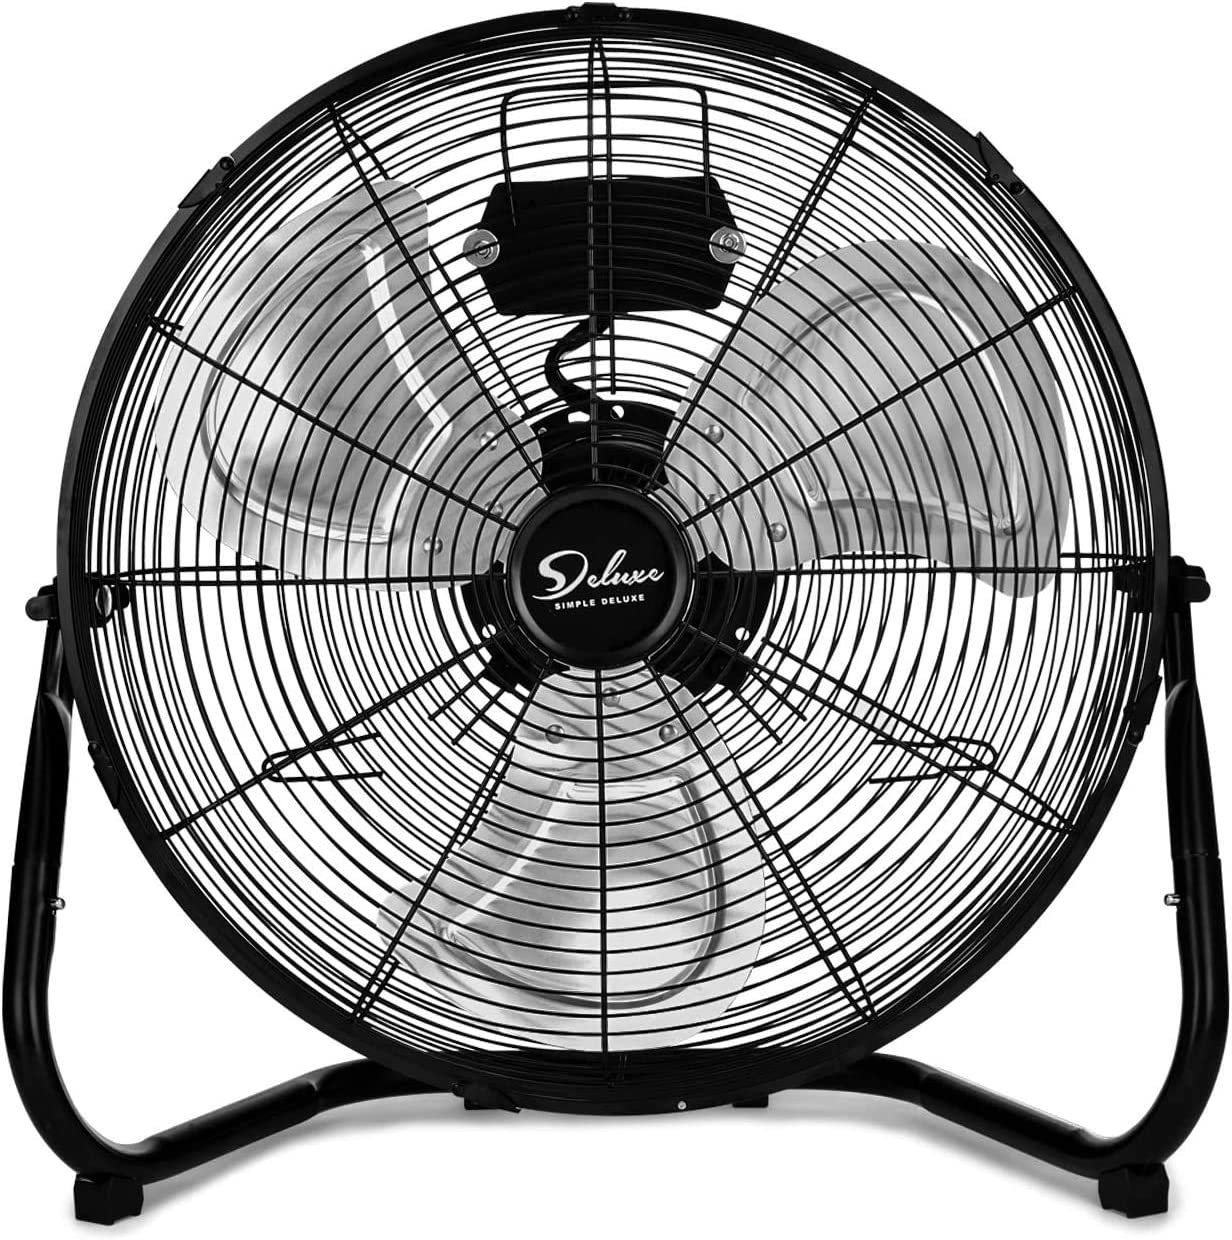 20 Inch 3-Speed High Velocity Heavy Duty Metal Industrial Floor Fans Oscillating Quiet for Home, Commercial, Residential, and Greenhouse Use, Outdoor/Indoor, Black